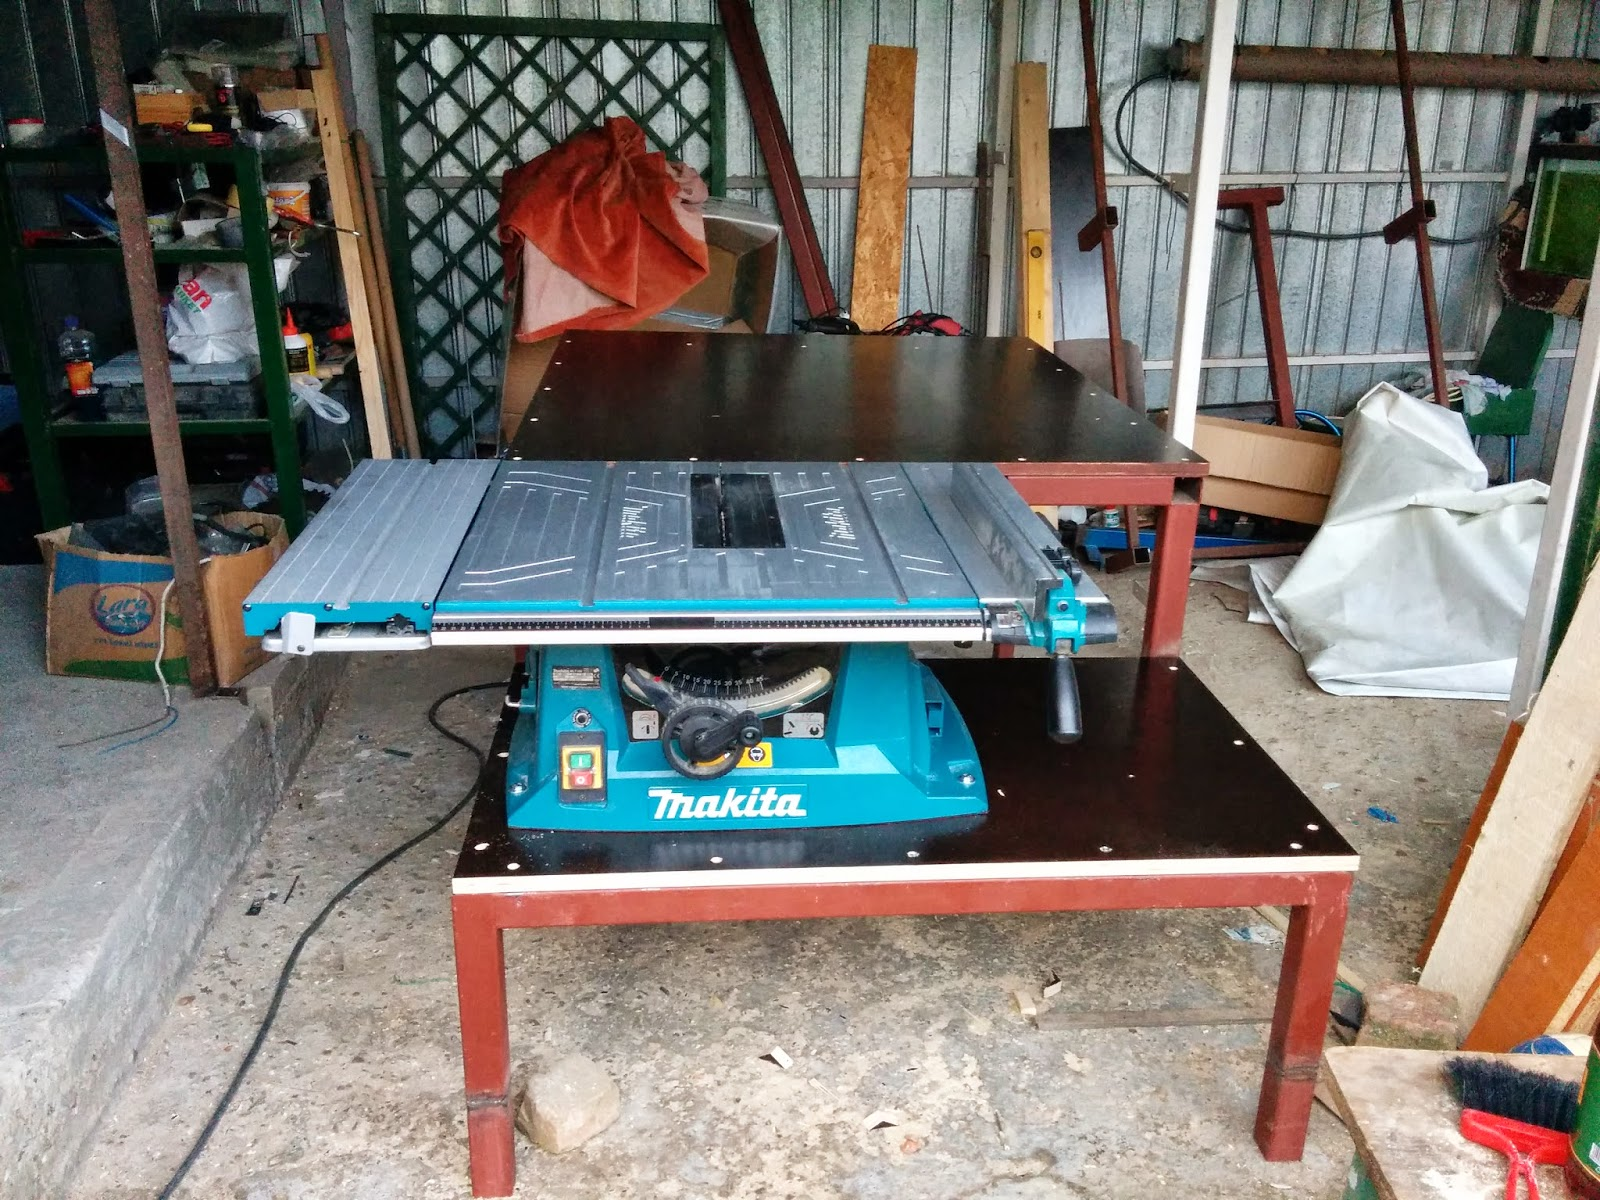 Cr radial Arm Saw moreover Tablesaw moreover New Table Saw New Project Table Saw in addition View All besides Tables stands Router table accessories. on sawdust collection system for small shop